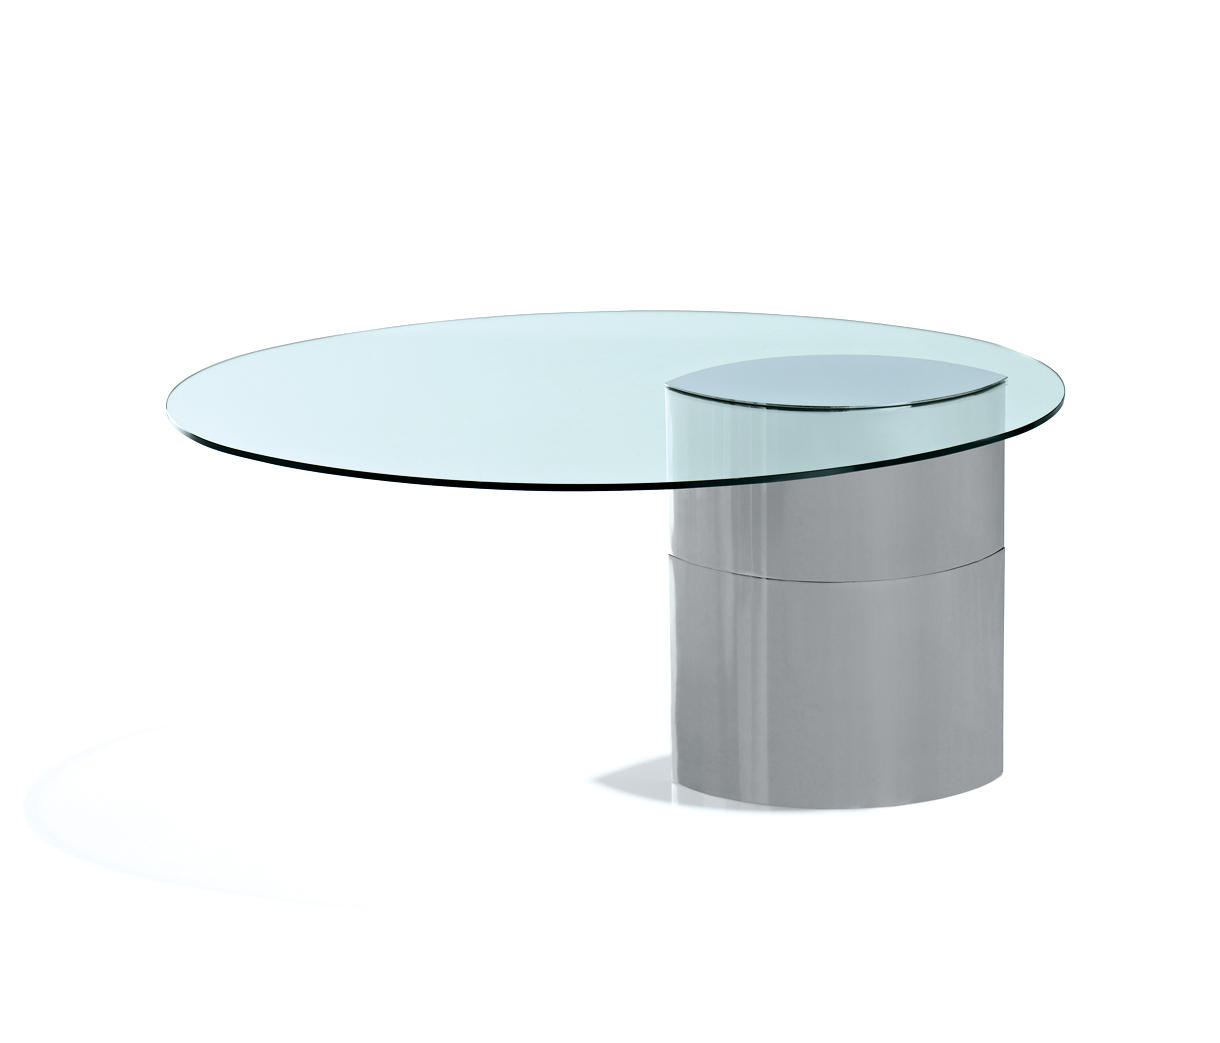 lunario table dining tables from knoll international. Black Bedroom Furniture Sets. Home Design Ideas